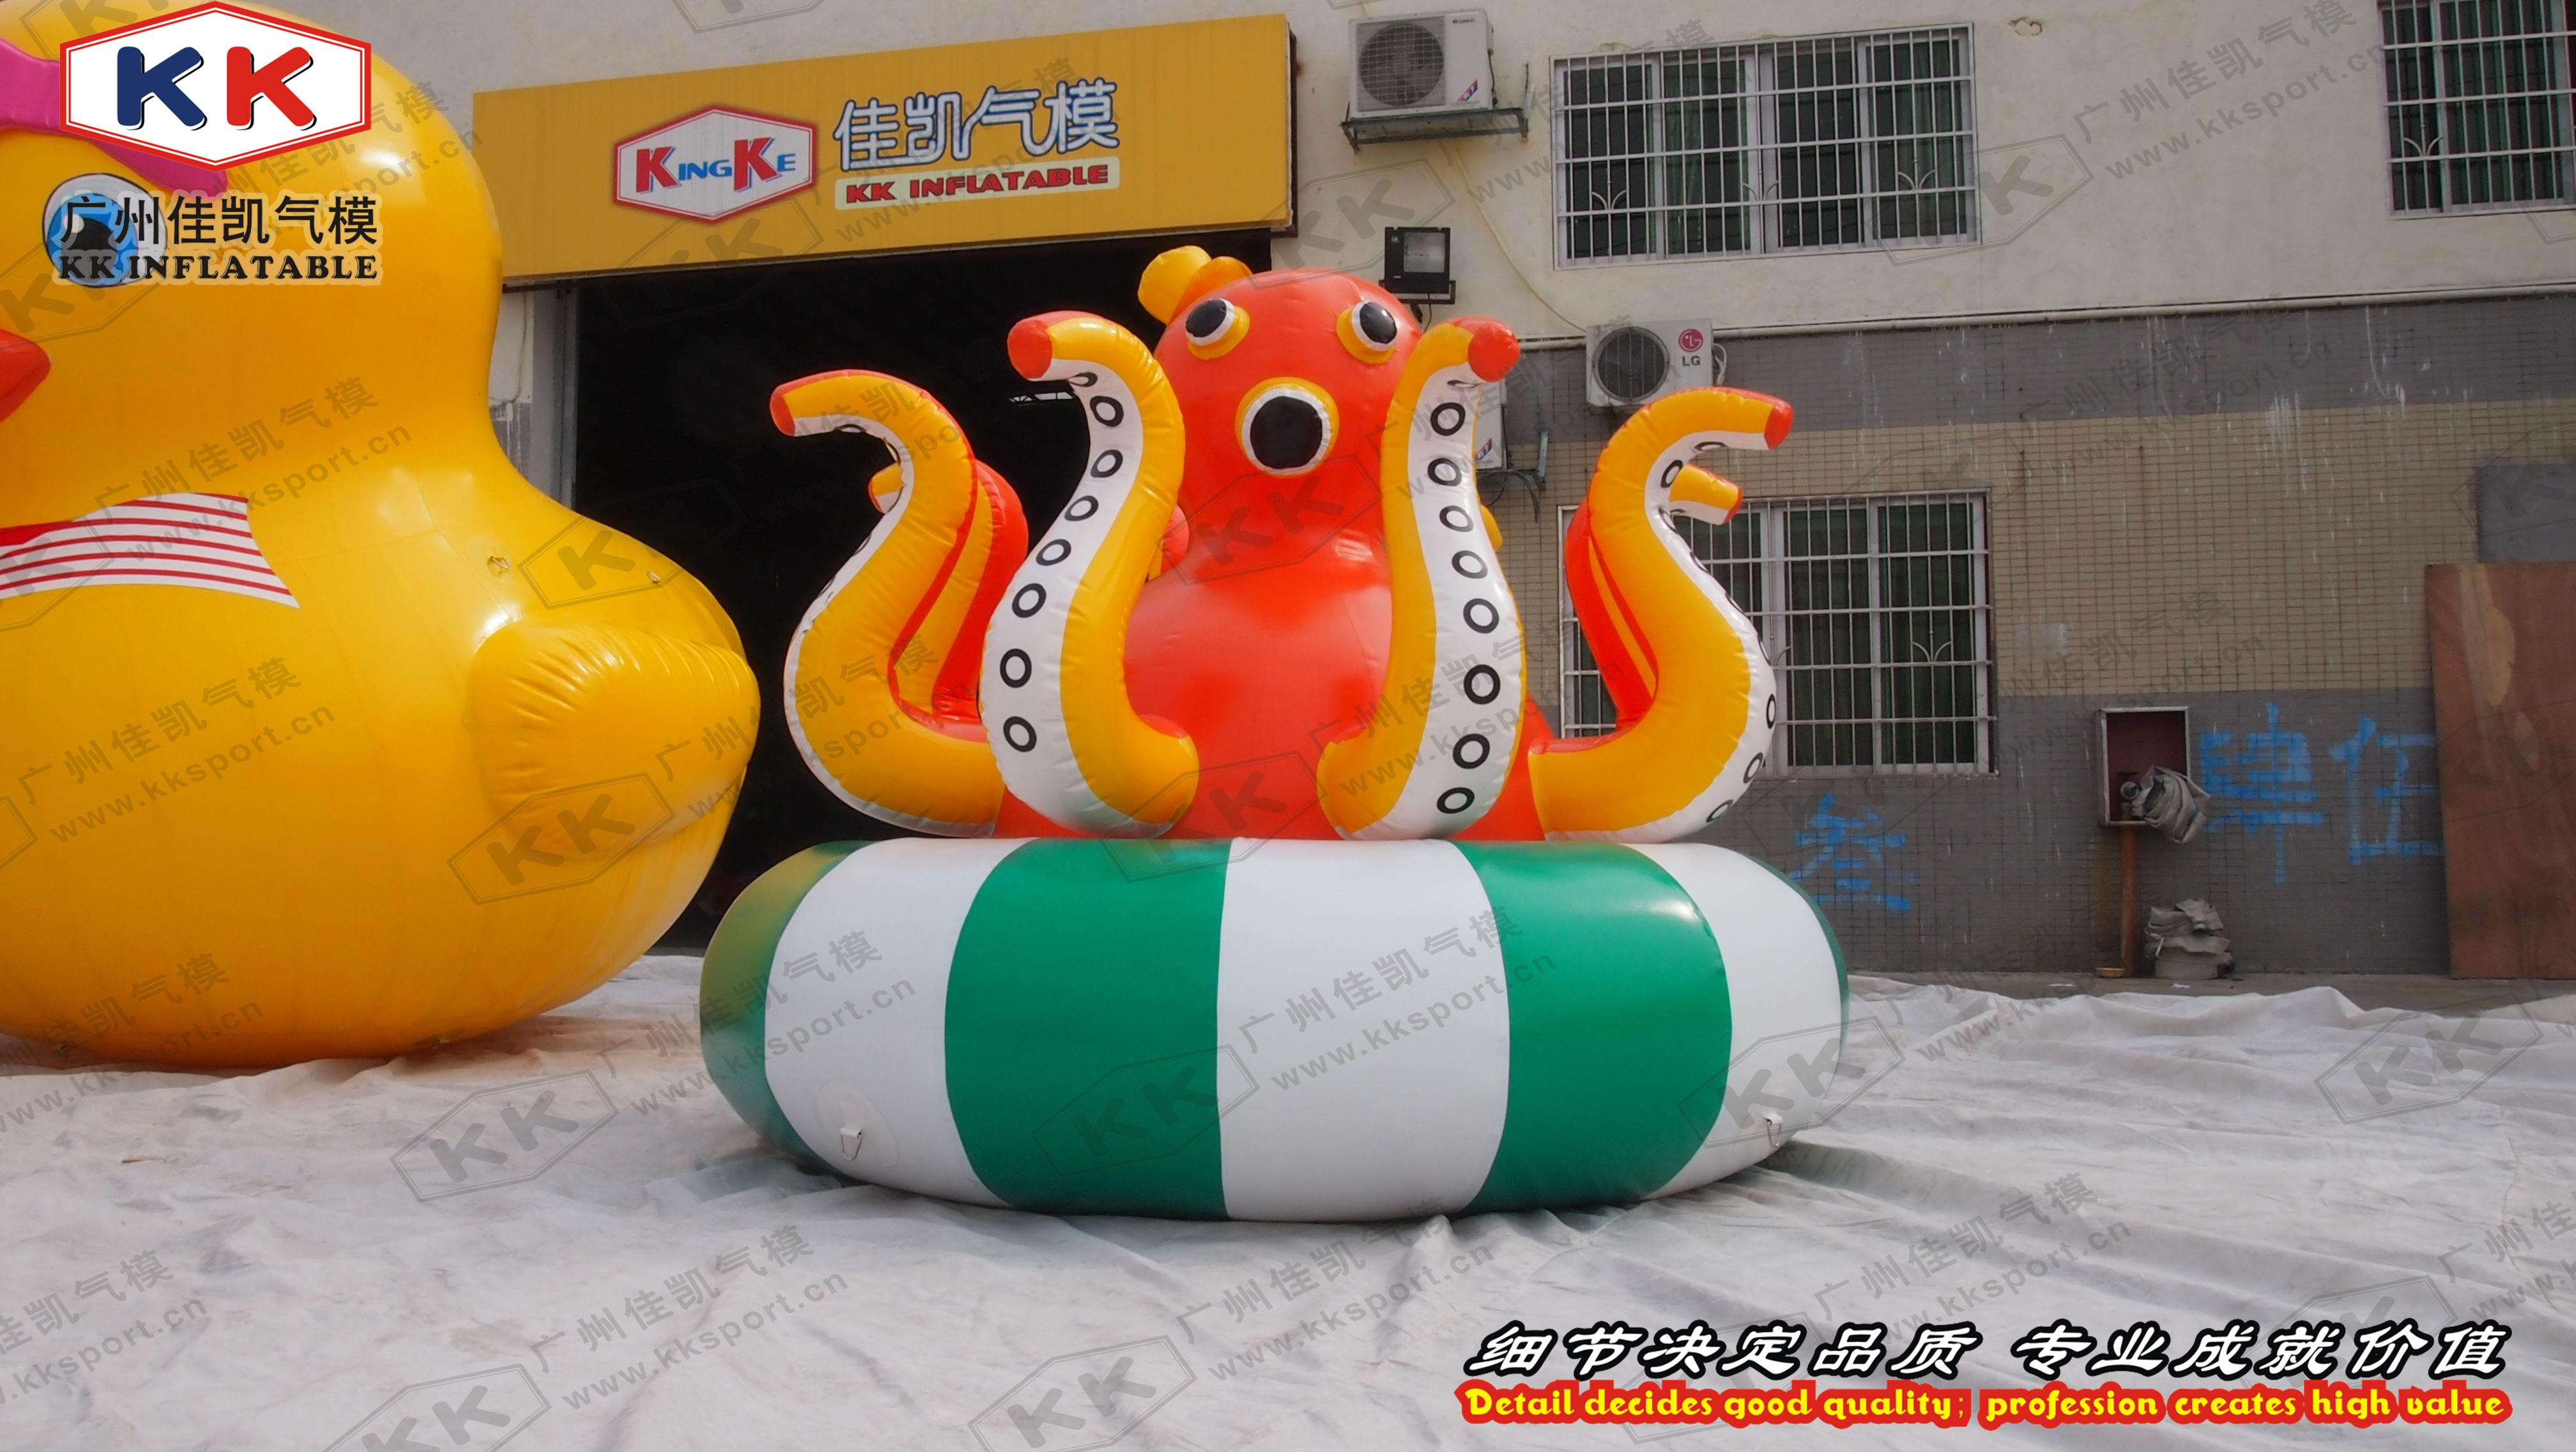 2018 Inflatable Octopus Water Toys Aqua Water Games Kids Floating